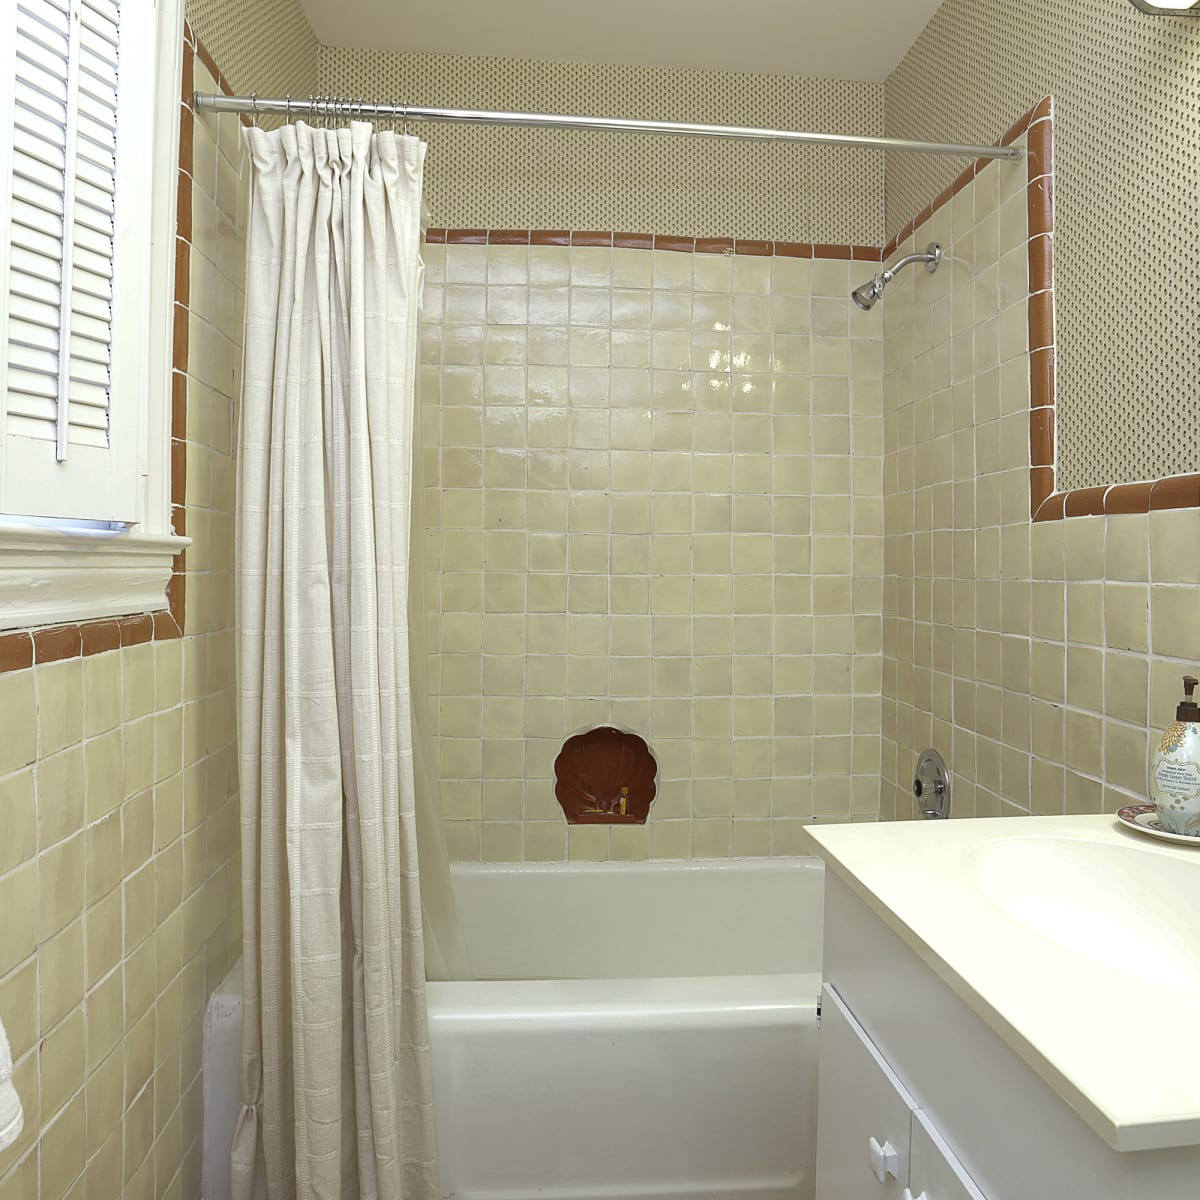 2424 Locke Lane in Houston house for sale bathroom